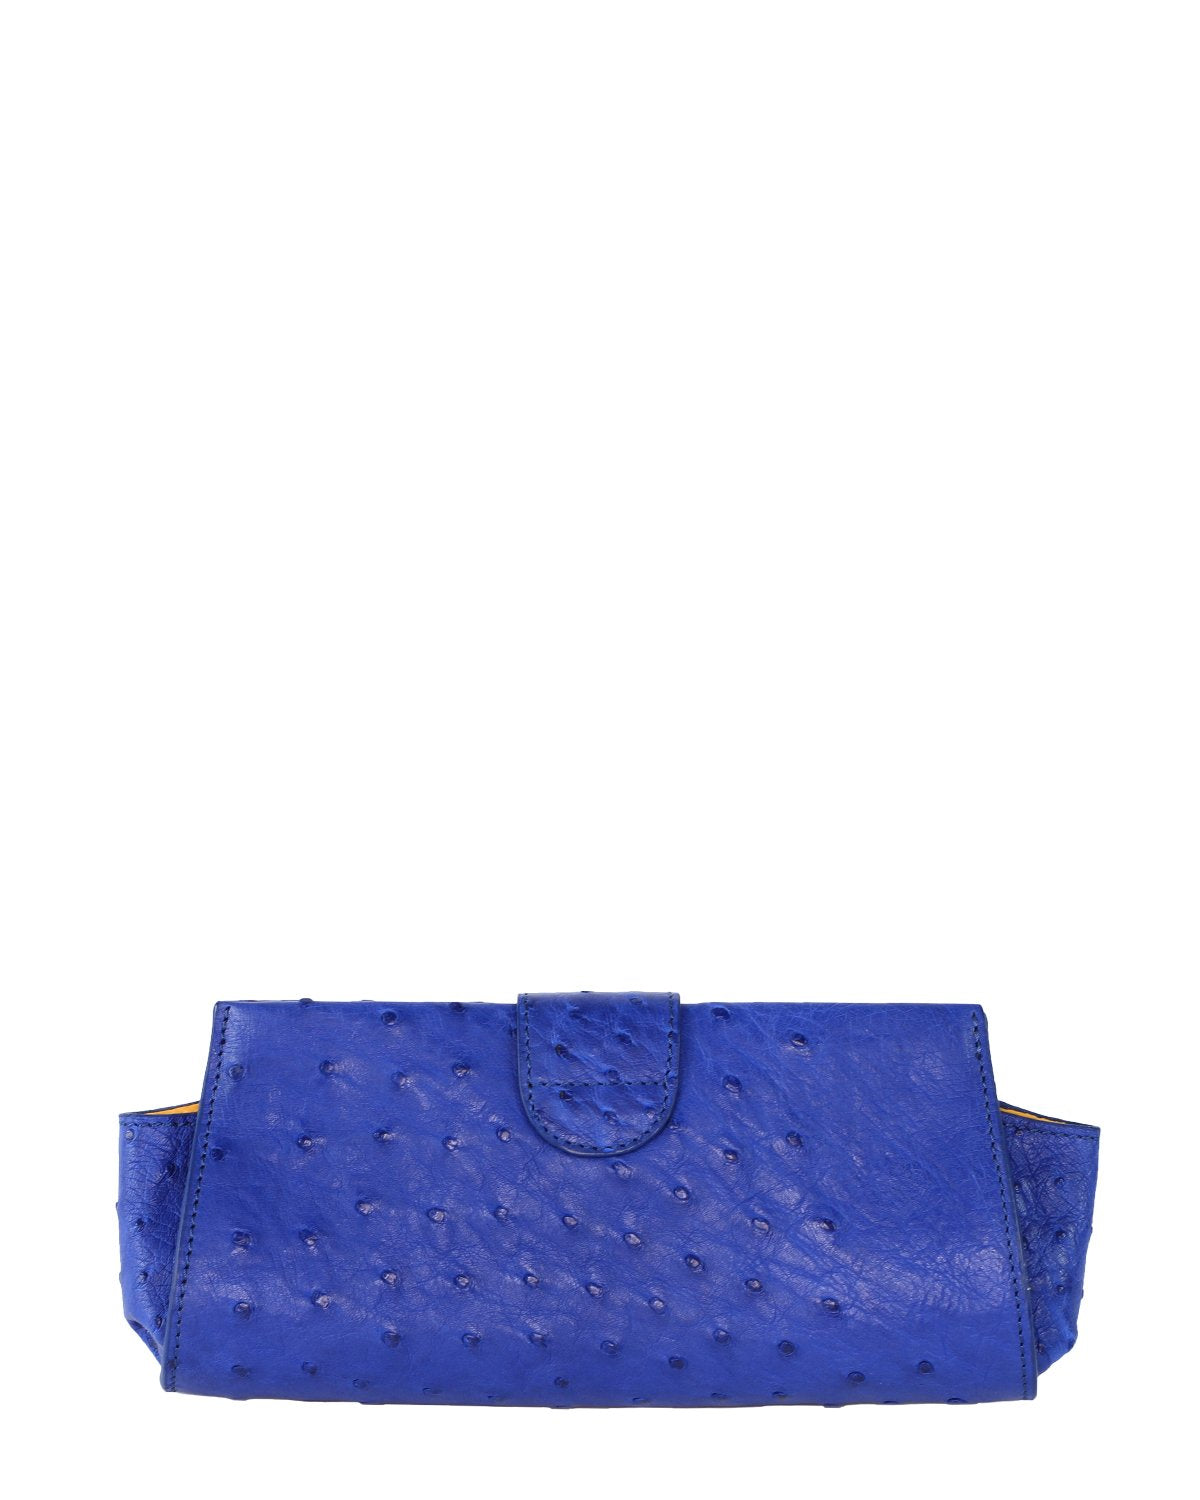 Ostrich Genuine LOUI Clutch Attachable Chain Royal Blue Yellow Gold Yara Bashoor Back View